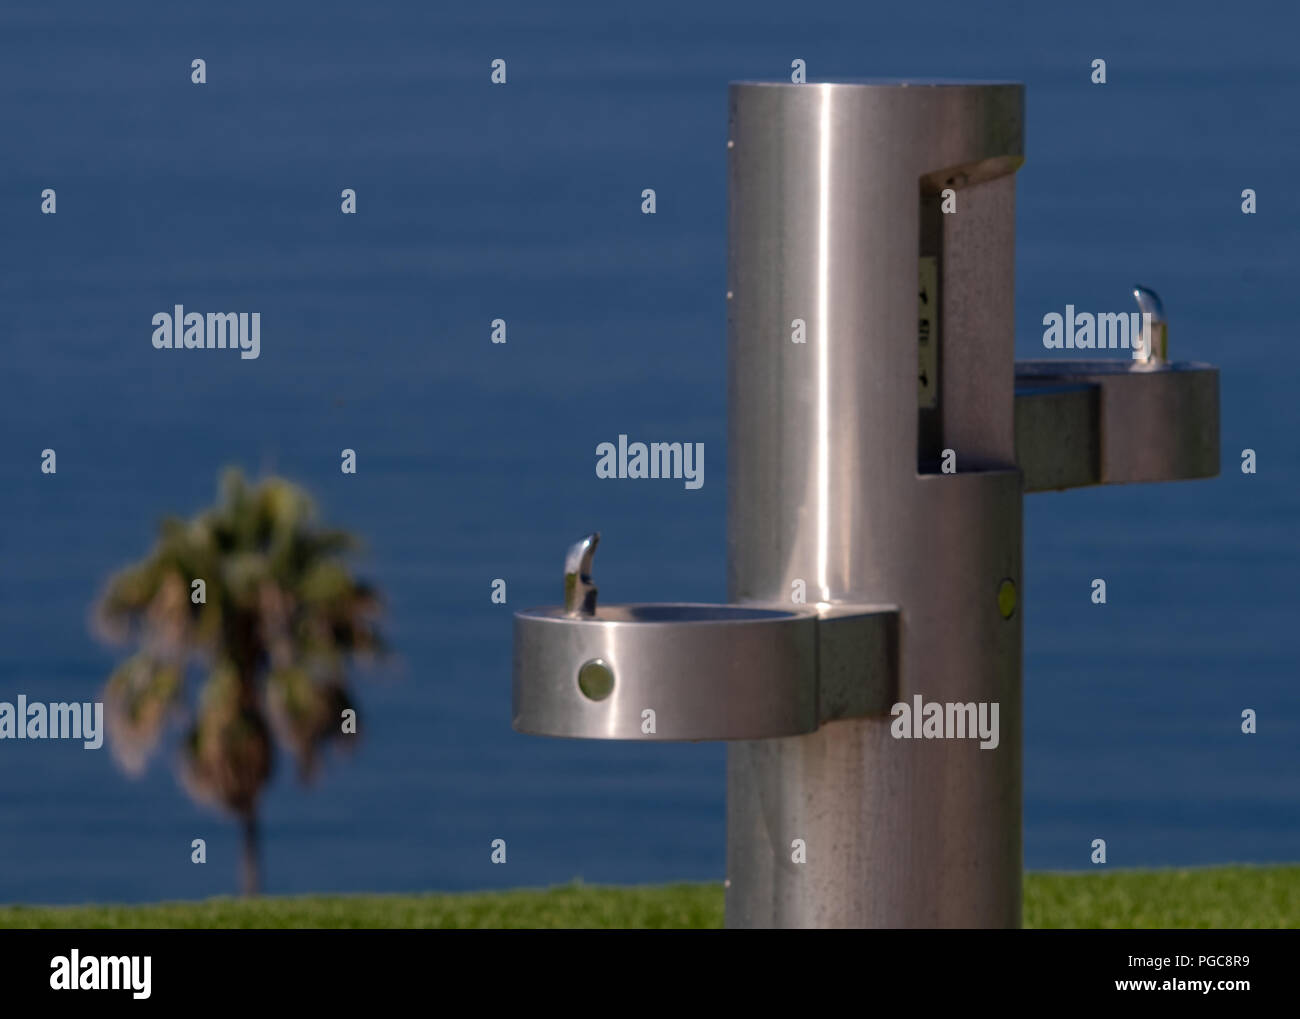 Water fountain in paradise, to go with your cheeseburger in paradise. - Stock Image